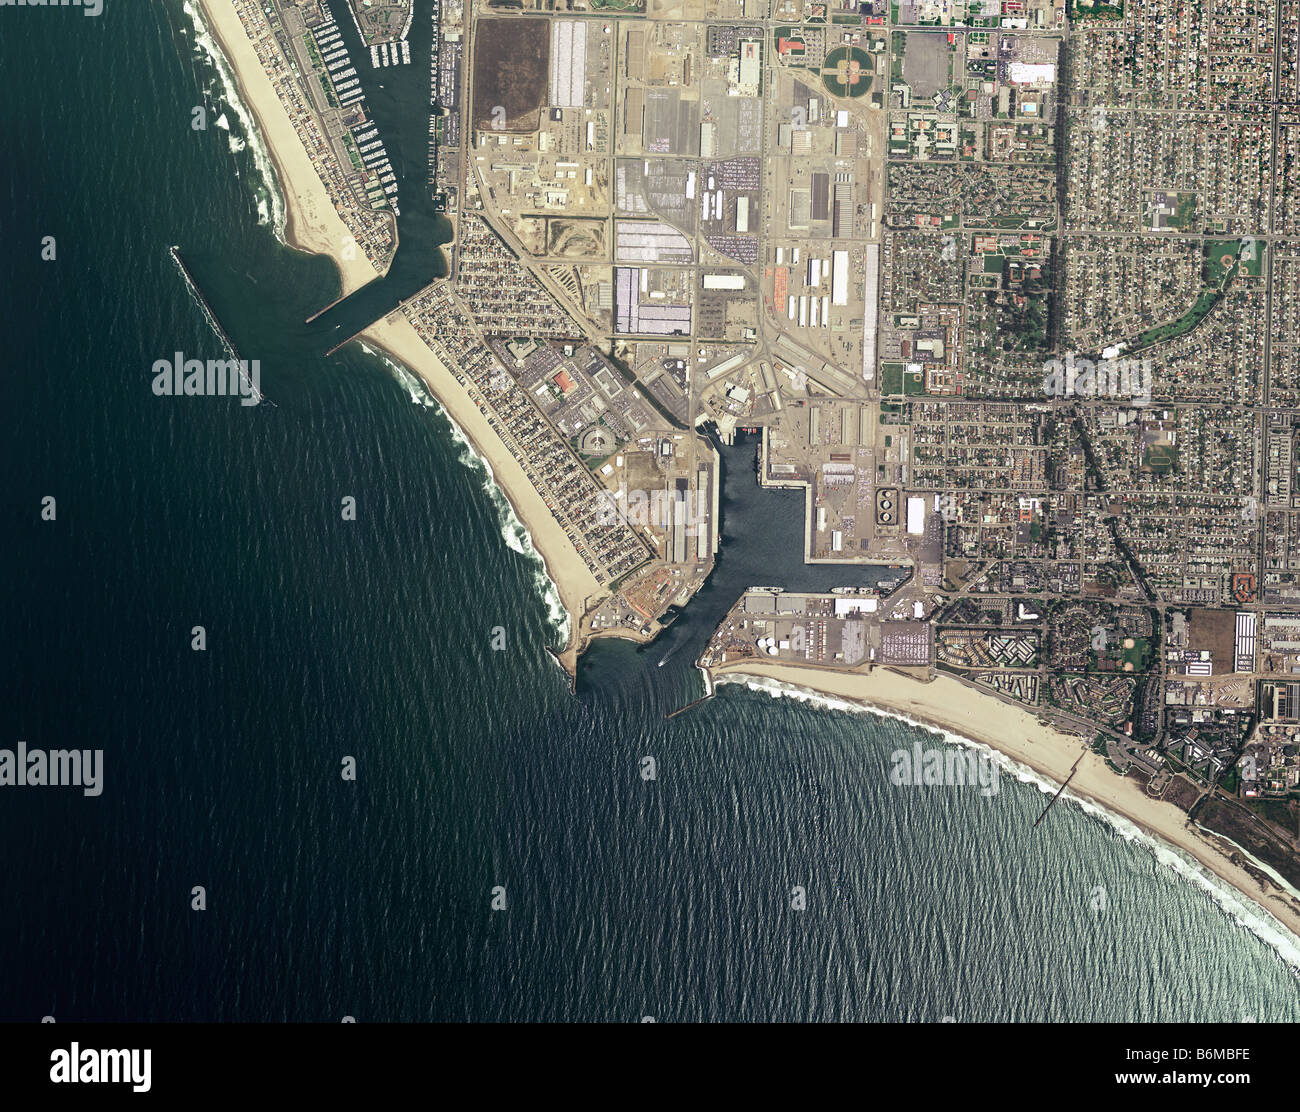 map of usa with comp with Stock Photo Aerial Map Of Port Hueneme And Channel Islands Harbor Oxnard Ventura 21346402 on Plan Manhattan New York together with New Zealand Travel Gm518503045 49640602 as well Stock Photo A Hand Indicates The Approximate Position Where Aron Ralstons Hand 24653172 additionally C0000 additionally Centraal Amerika De Cara C3 AFben Kaart 1972569.